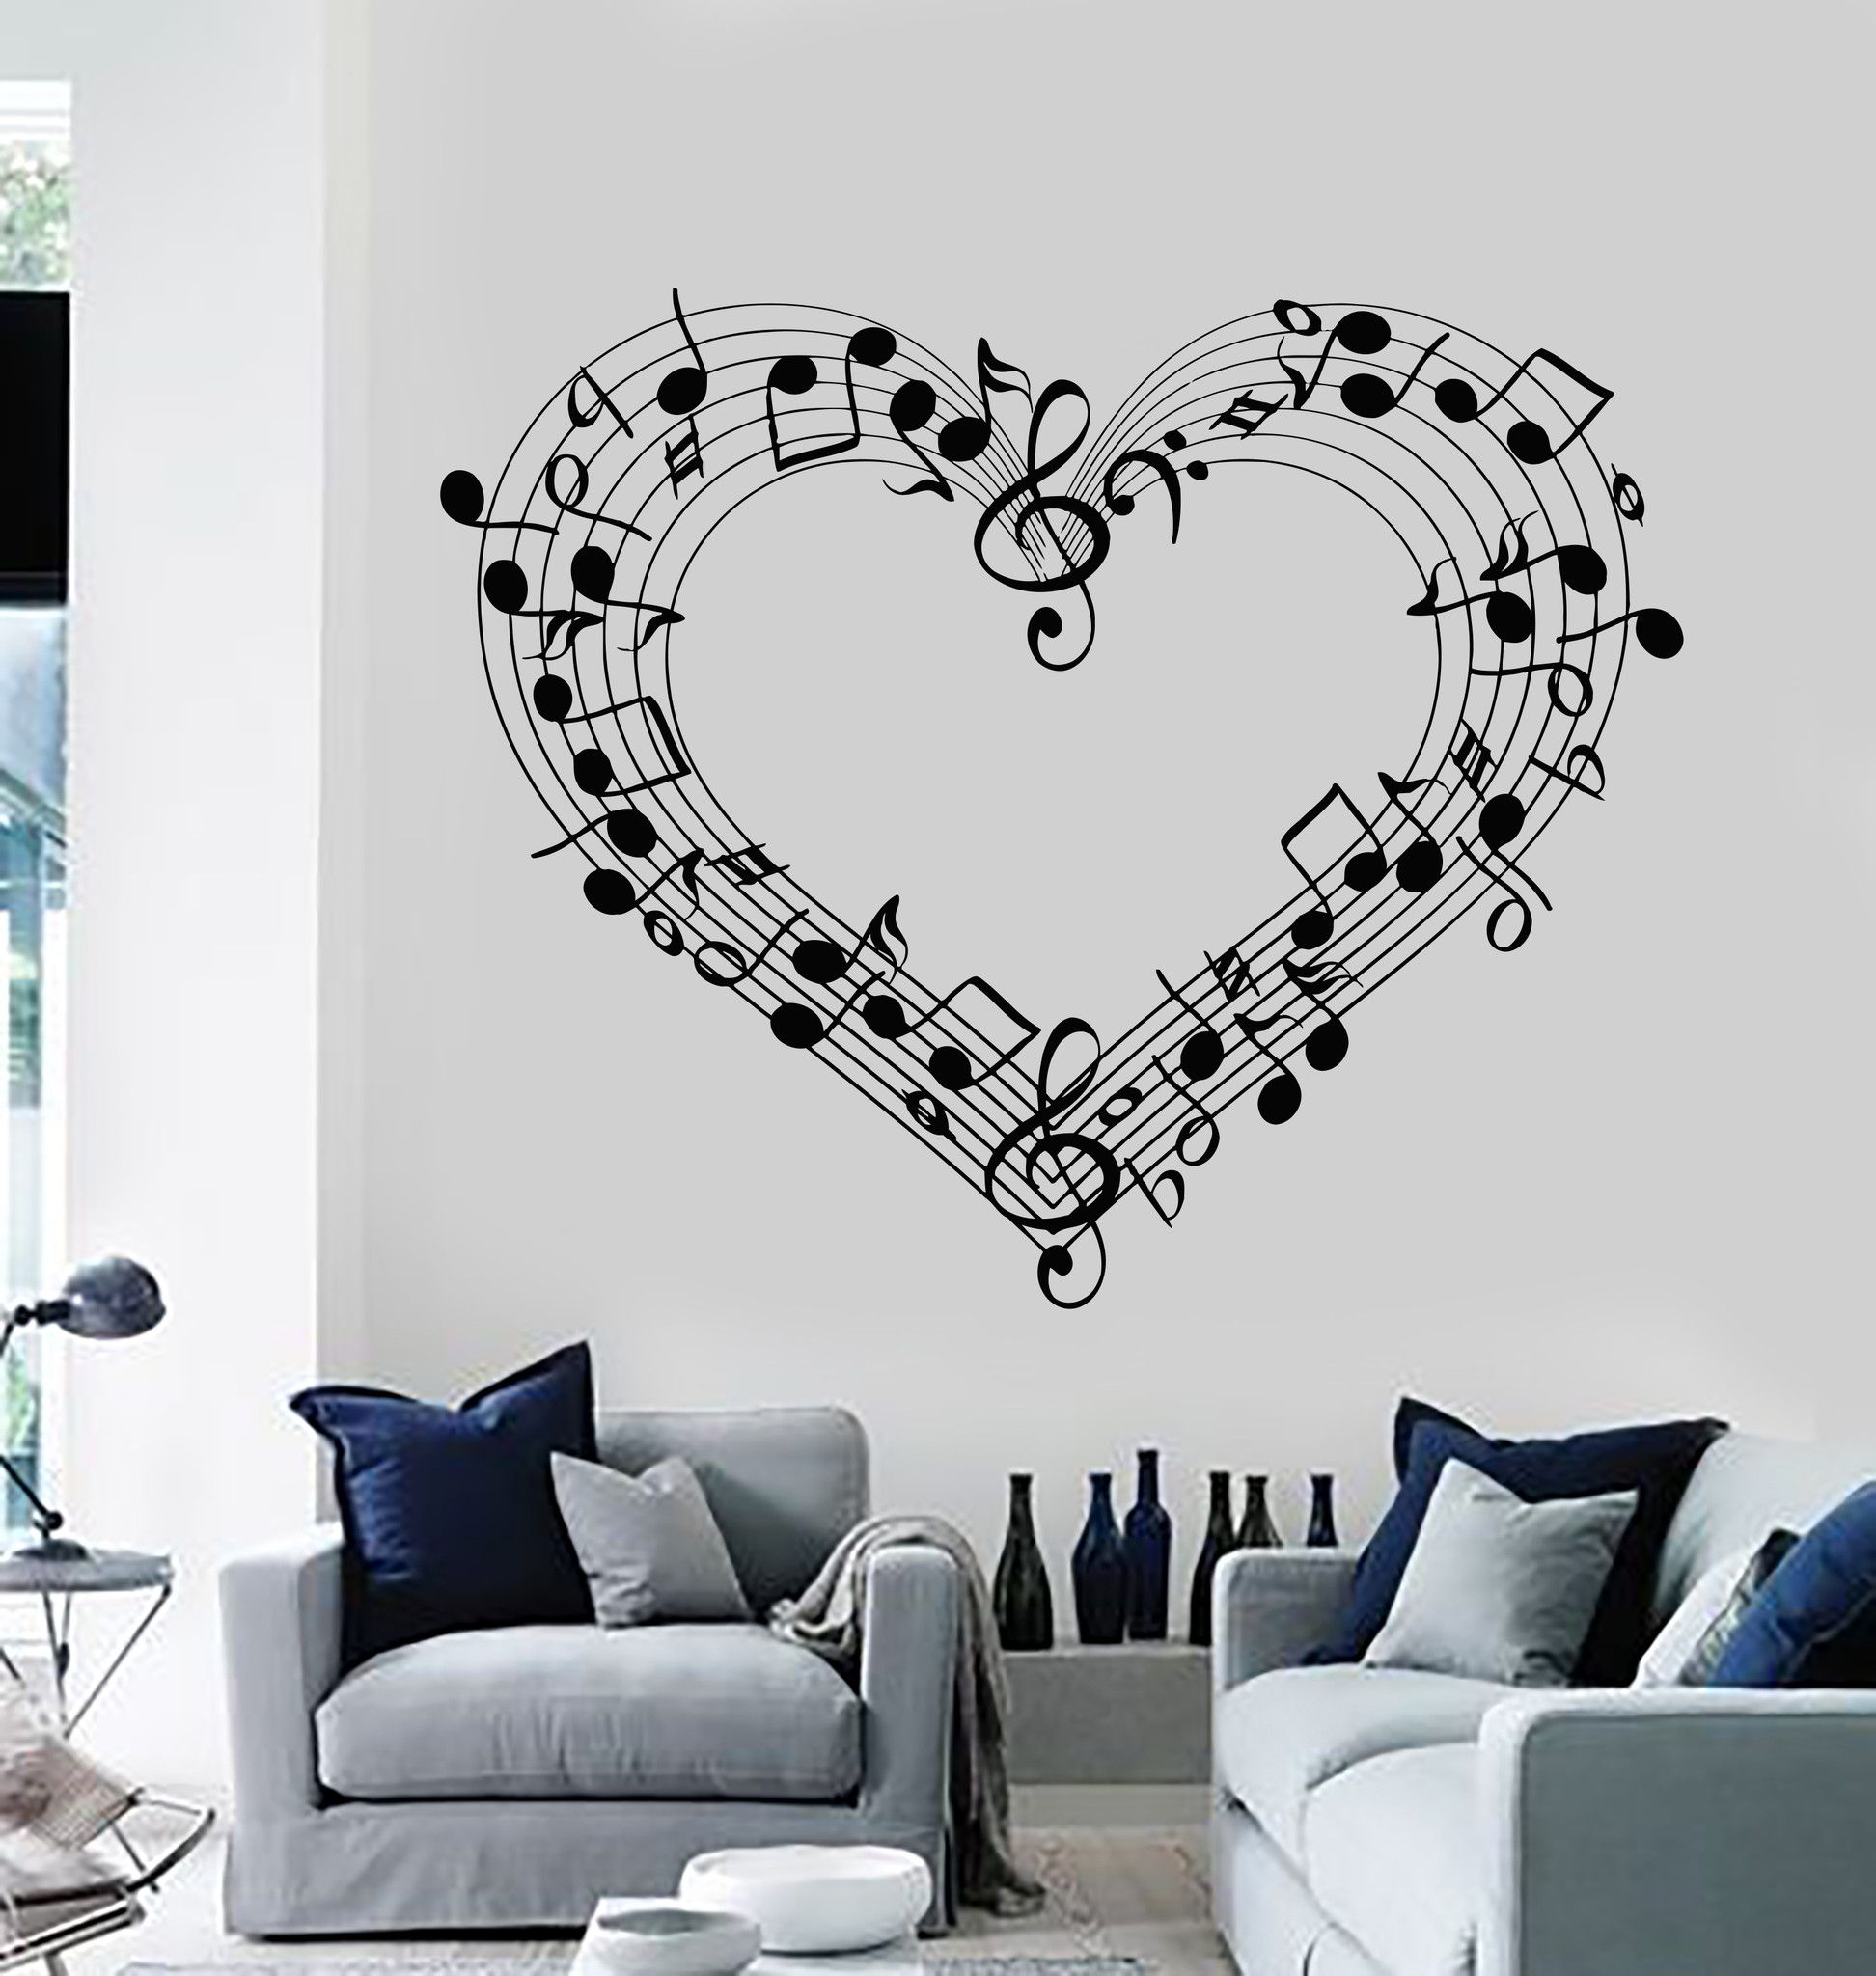 wall decal sheet music love coolest room decor vinyl on wall stickers painting id=13859